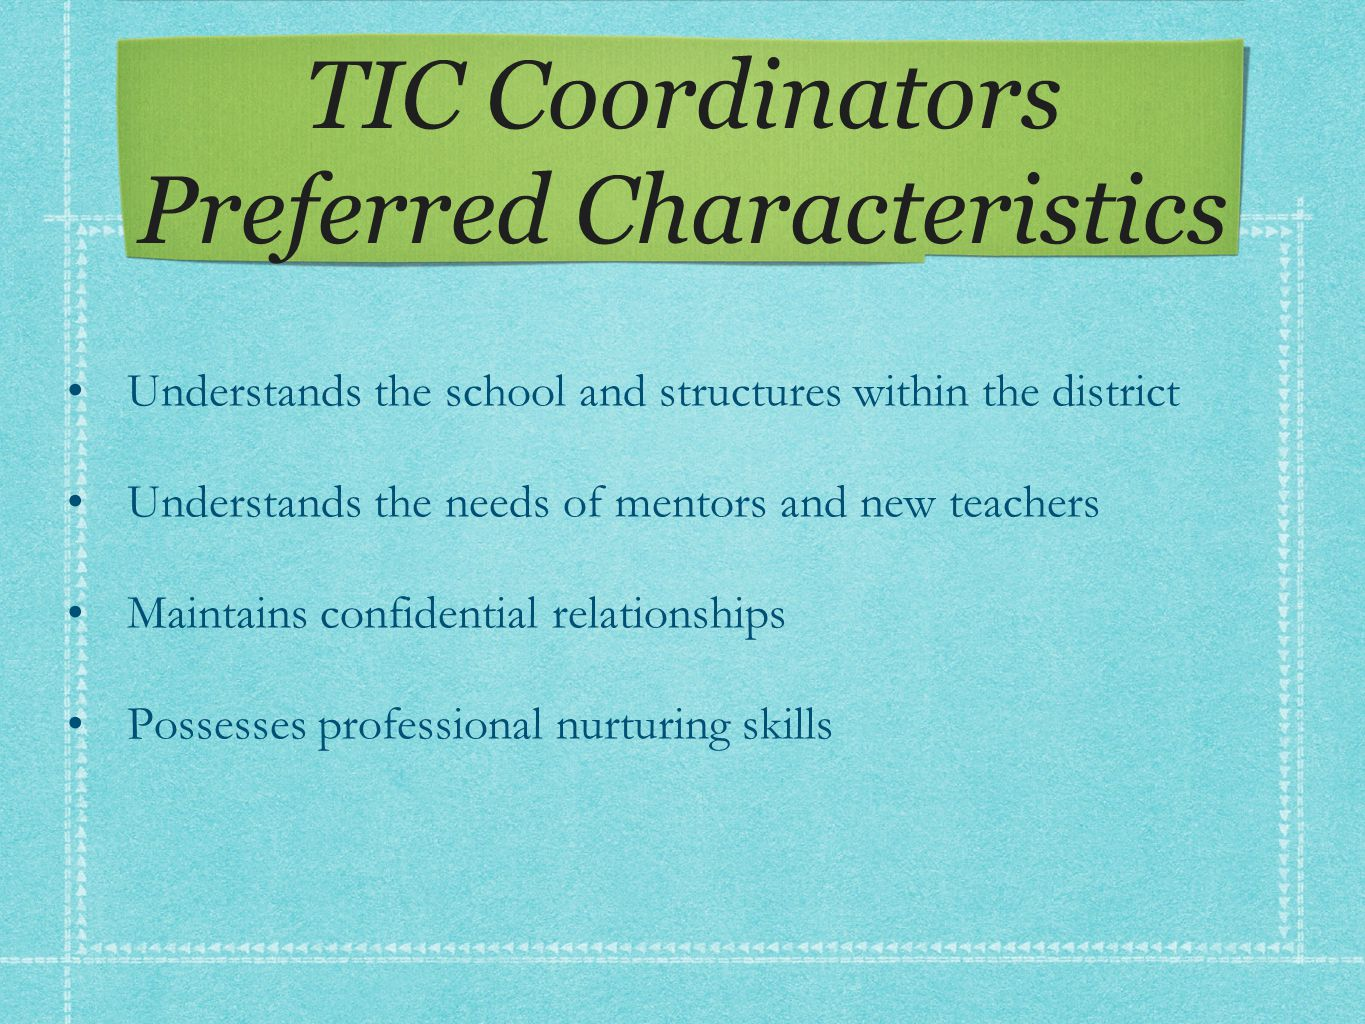 TIC Coordinators Preferred Characteristics Understands the school and structures within the district Understands the needs of mentors and new teachers Maintains confidential relationships Possesses professional nurturing skills